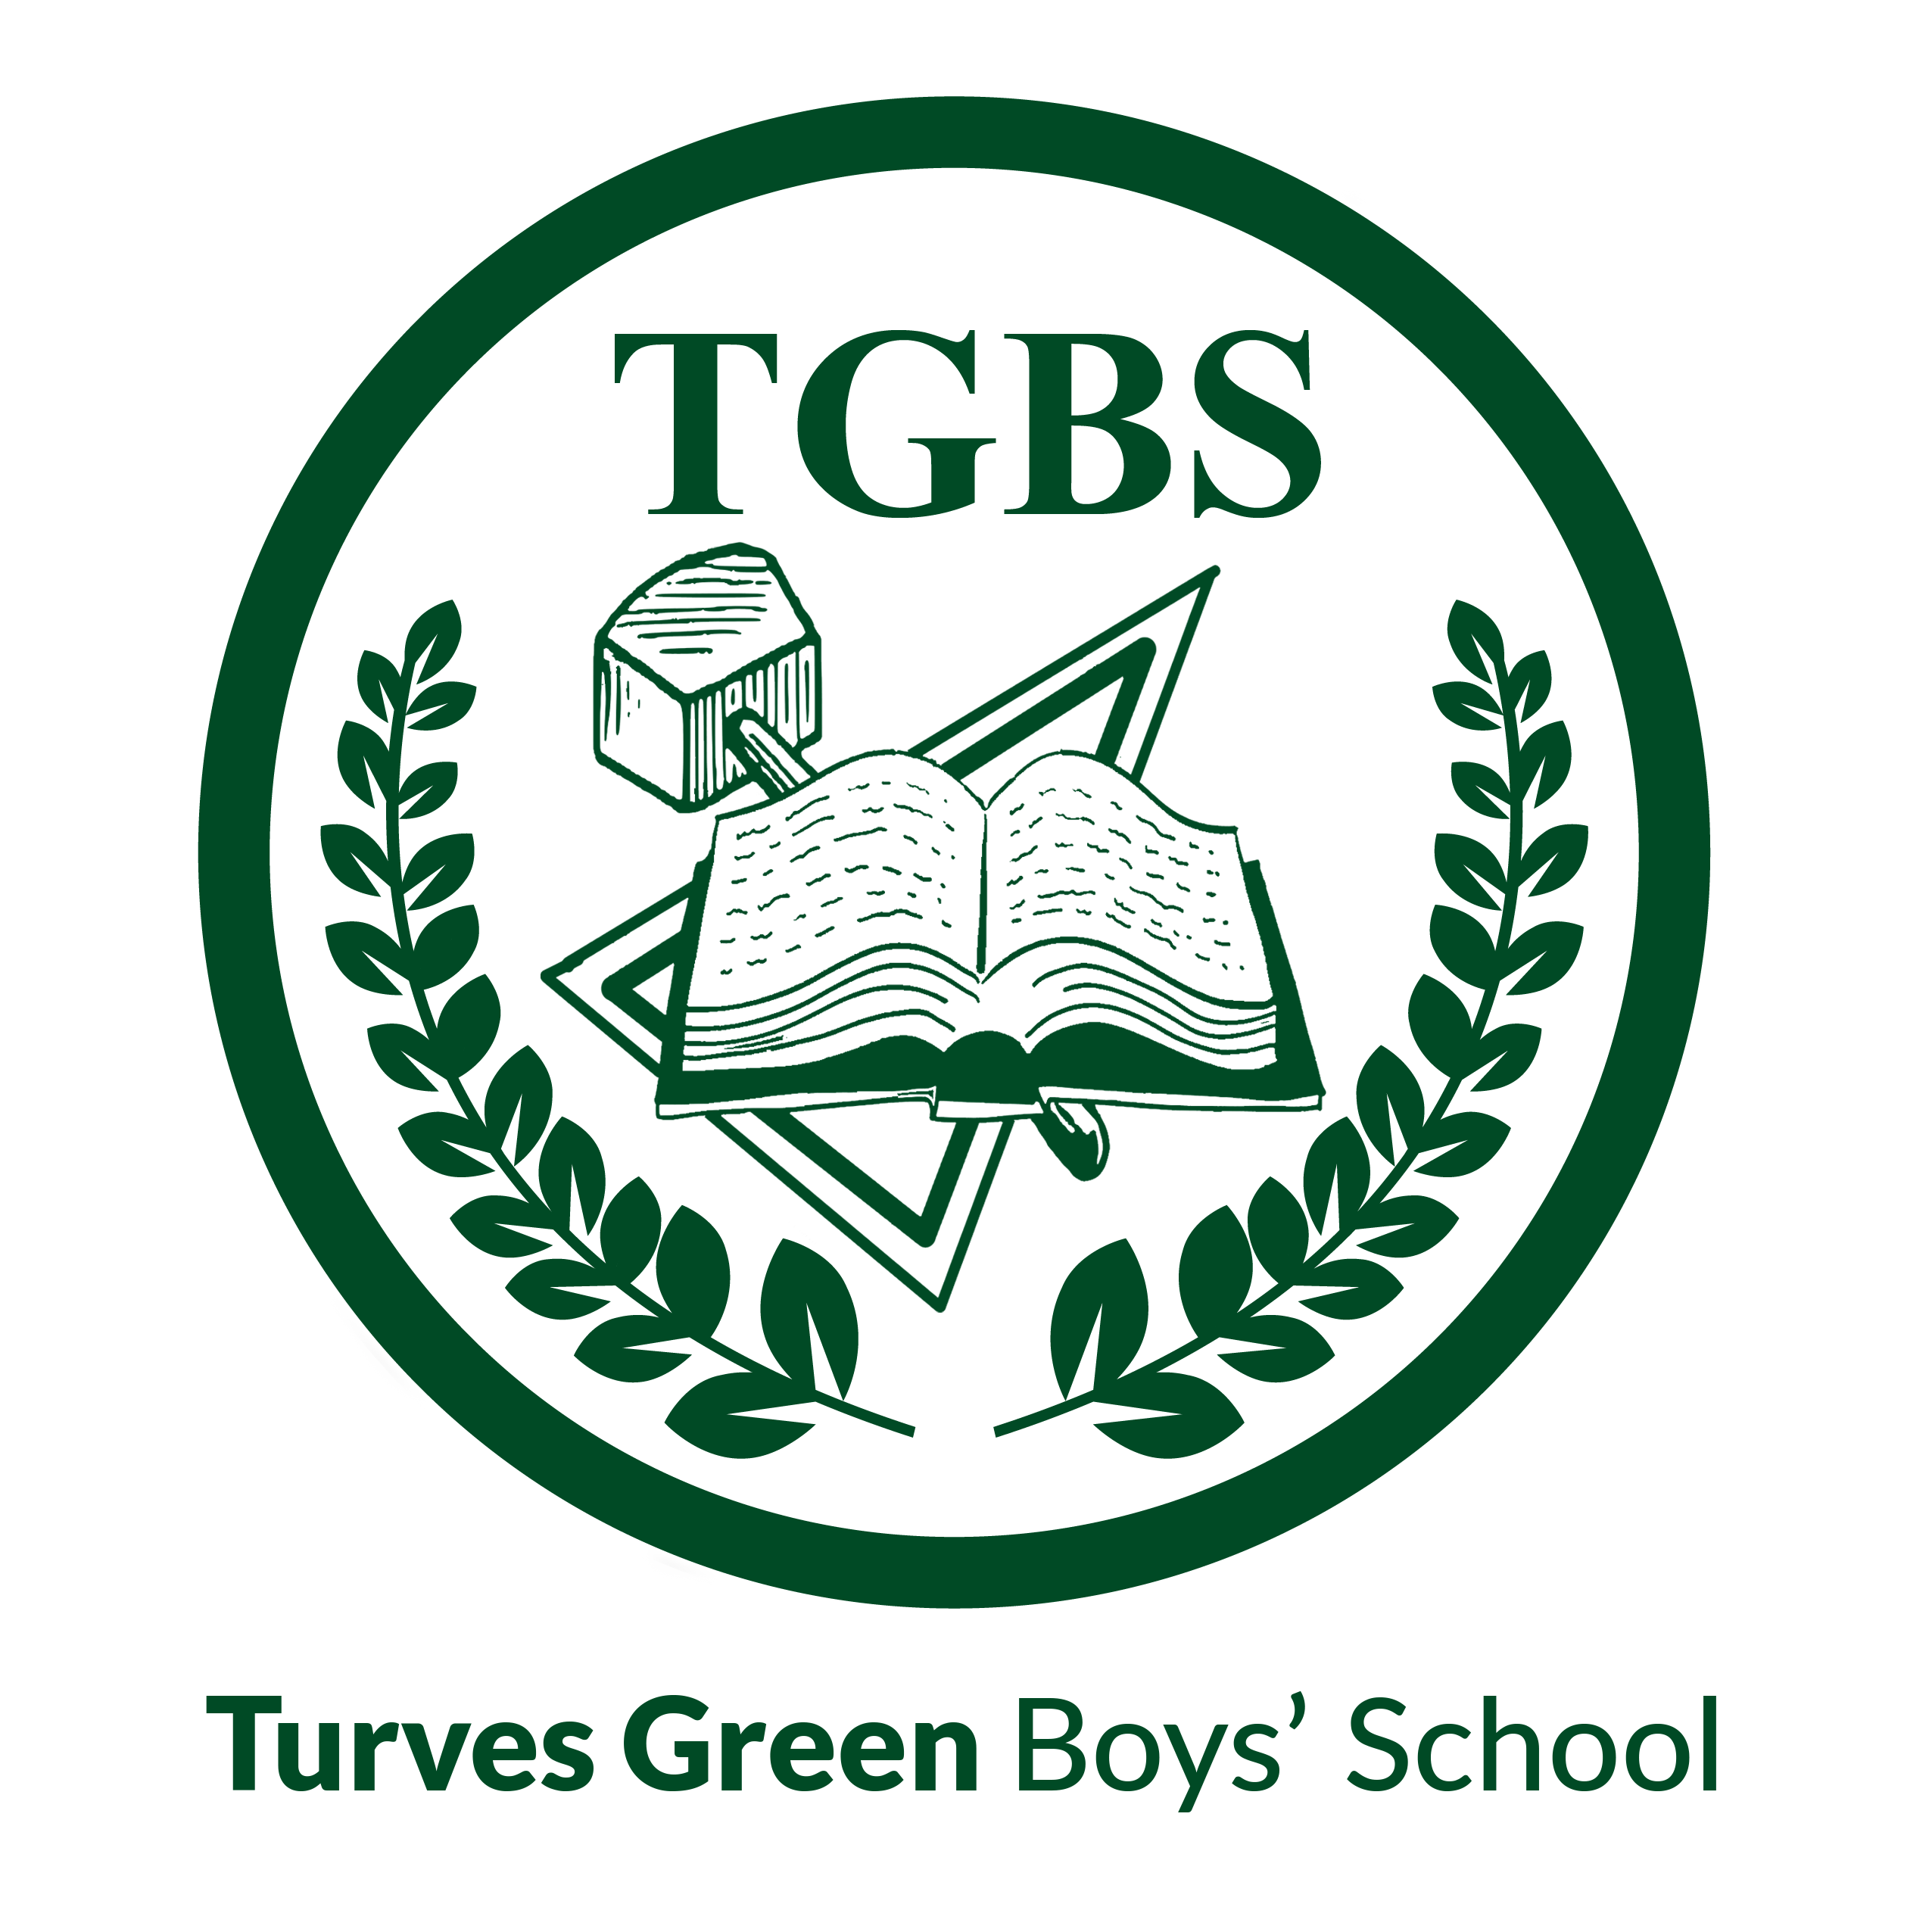 Turves Green Boys' School